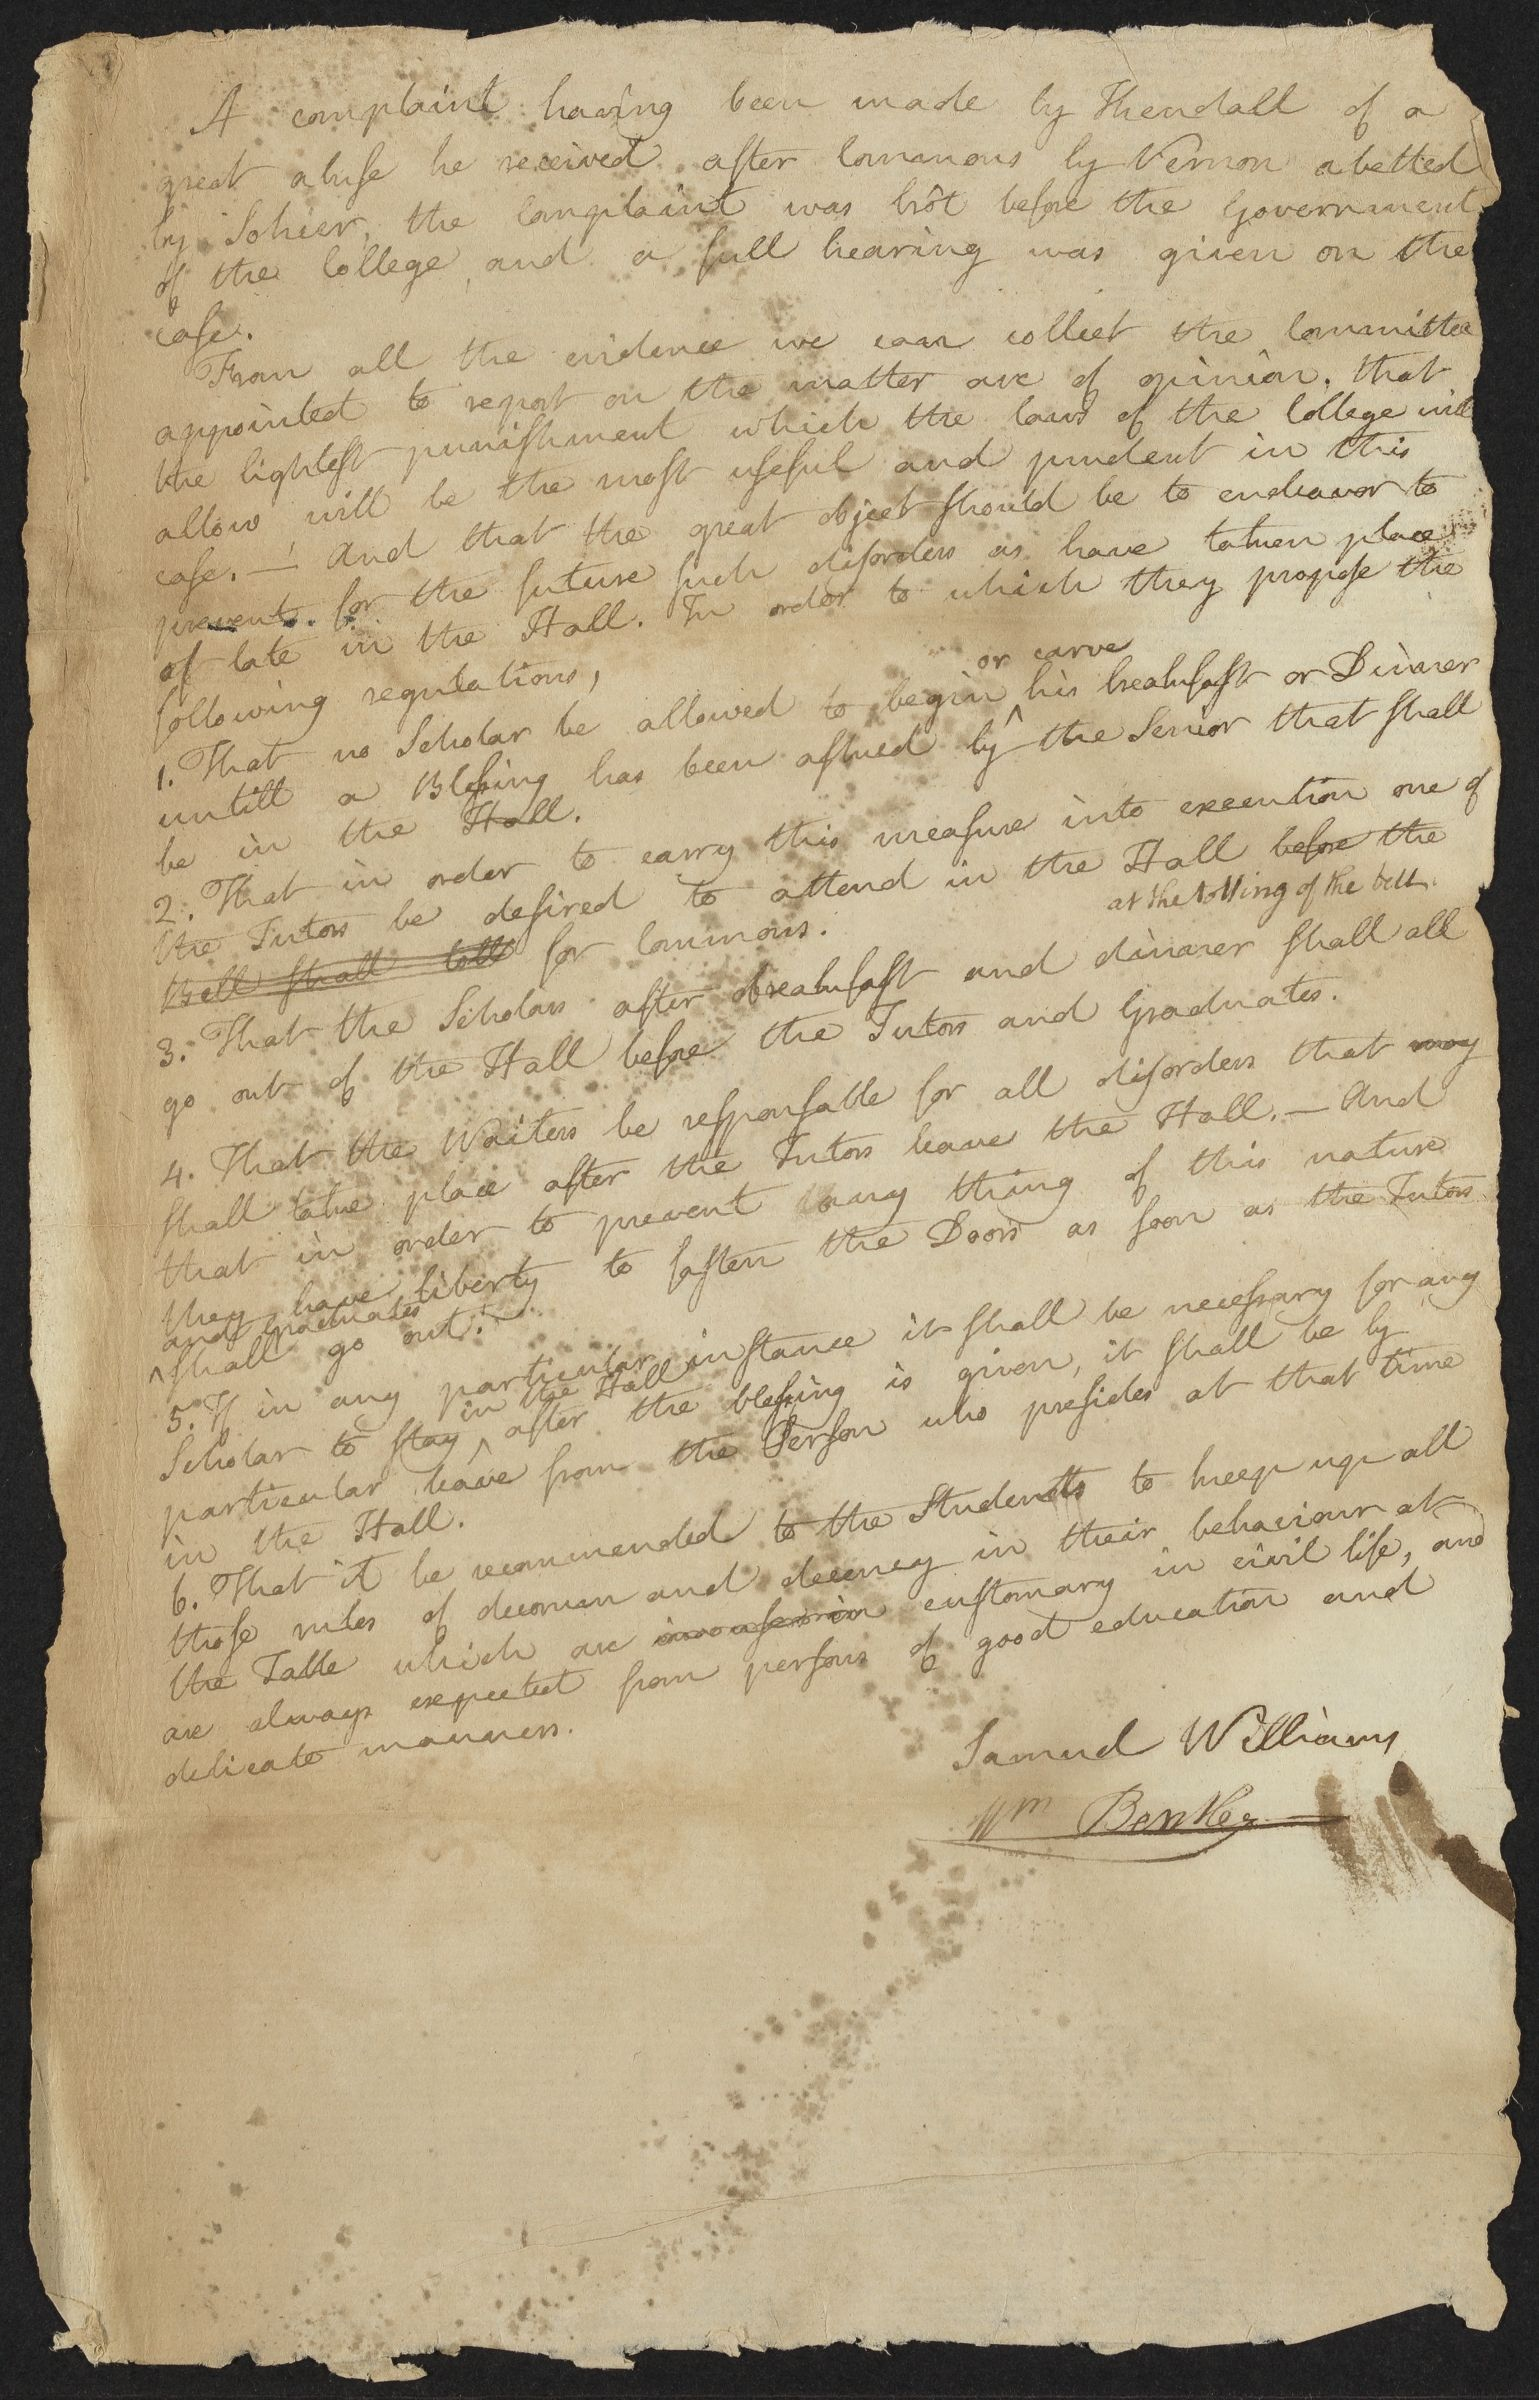 [Committee report], 1780 May 16